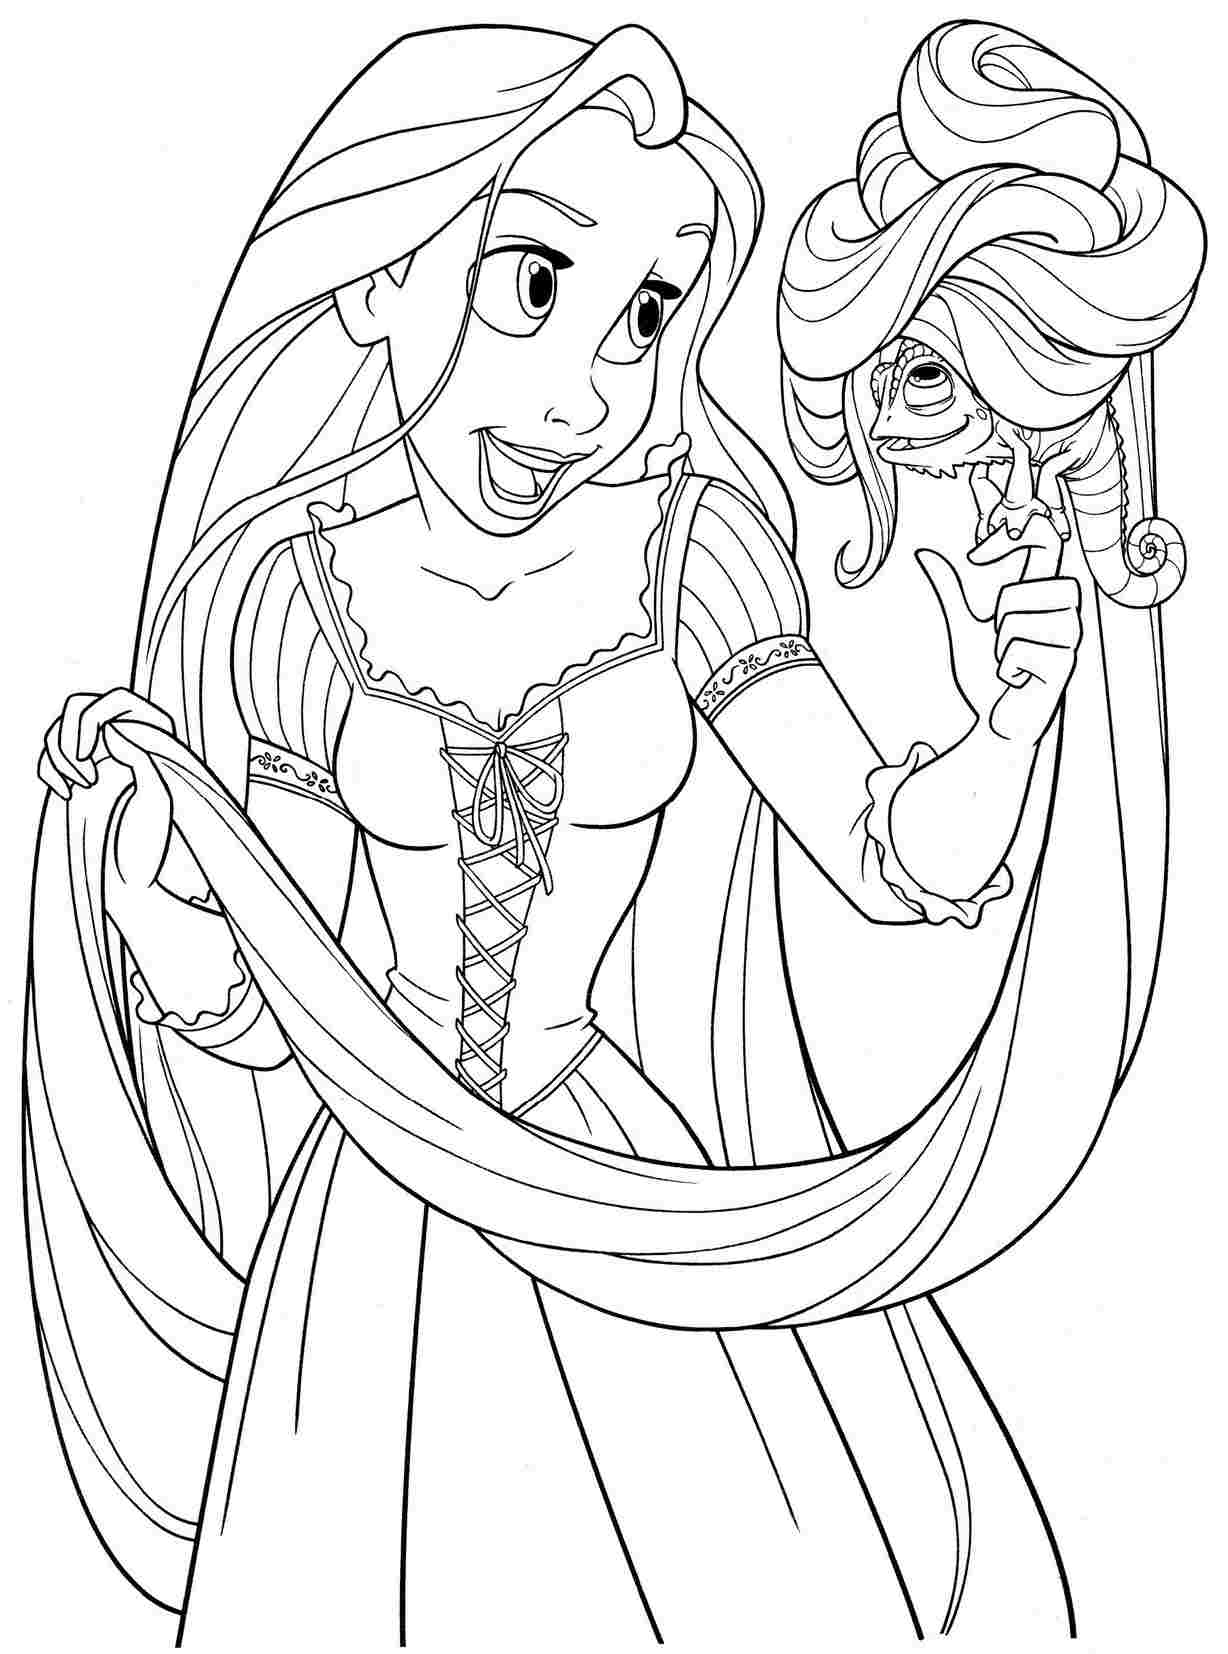 tangled coloring rapunzel tangled coloring pages coloring pages for kids tangled coloring